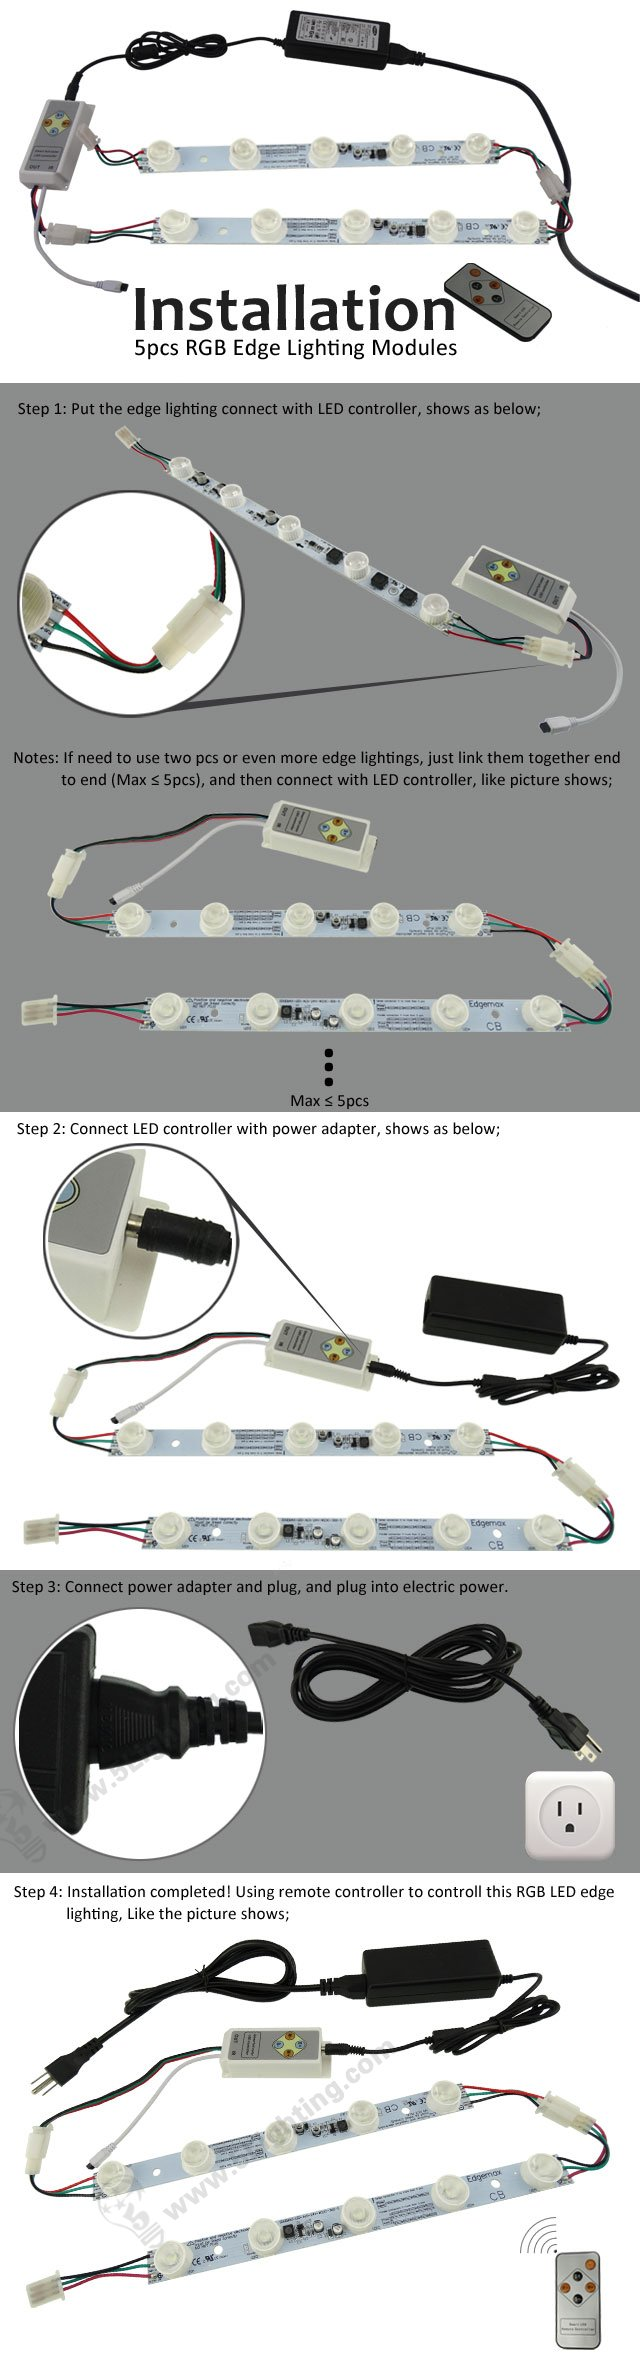 Cree RGB High Power LED Edge Modules - Connection - 5pcs